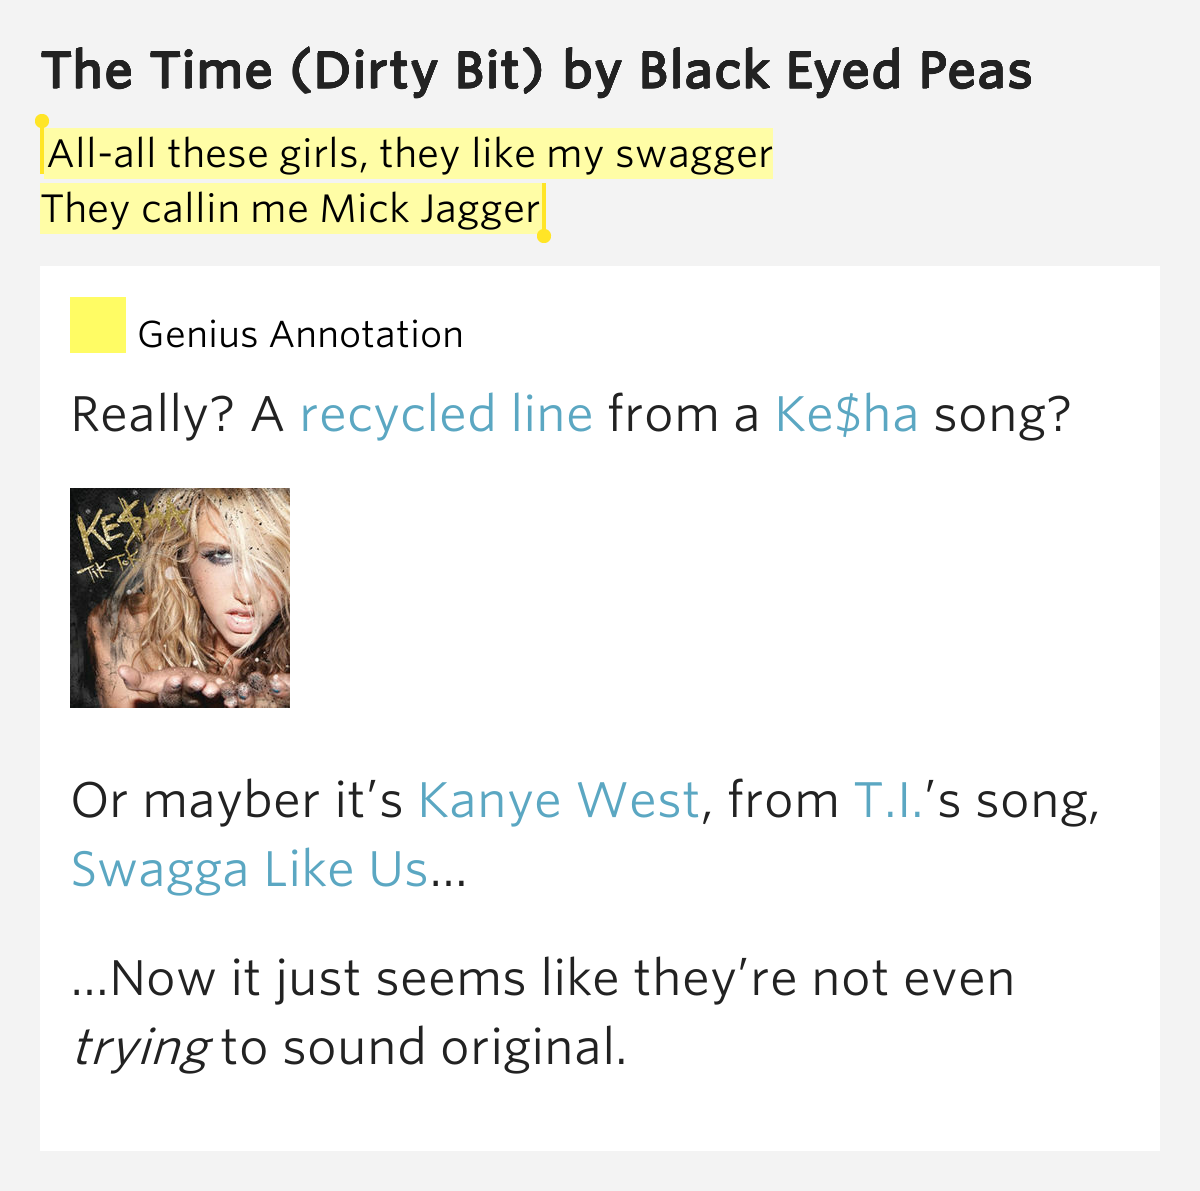 The Time Dirty Bit The Black Eyed Peas: All-all These Girls, They Like My Swagger..